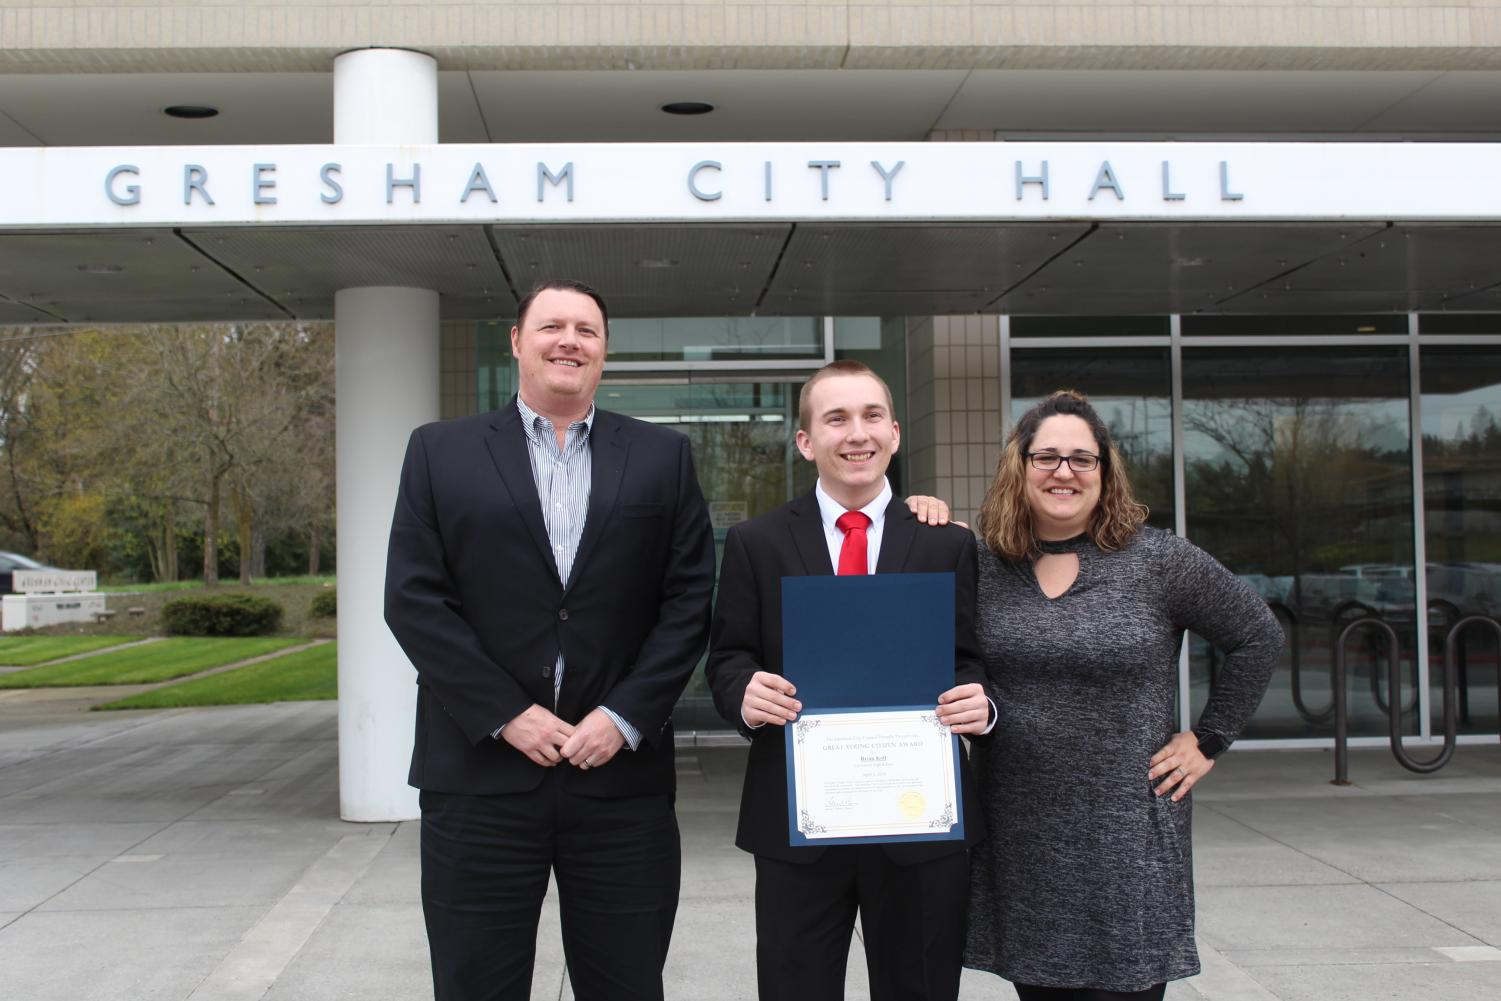 Assistant Principle Zachary Ramberg, Brian Koll and Adriann Hardin. Koll won the Young Citizen Award.